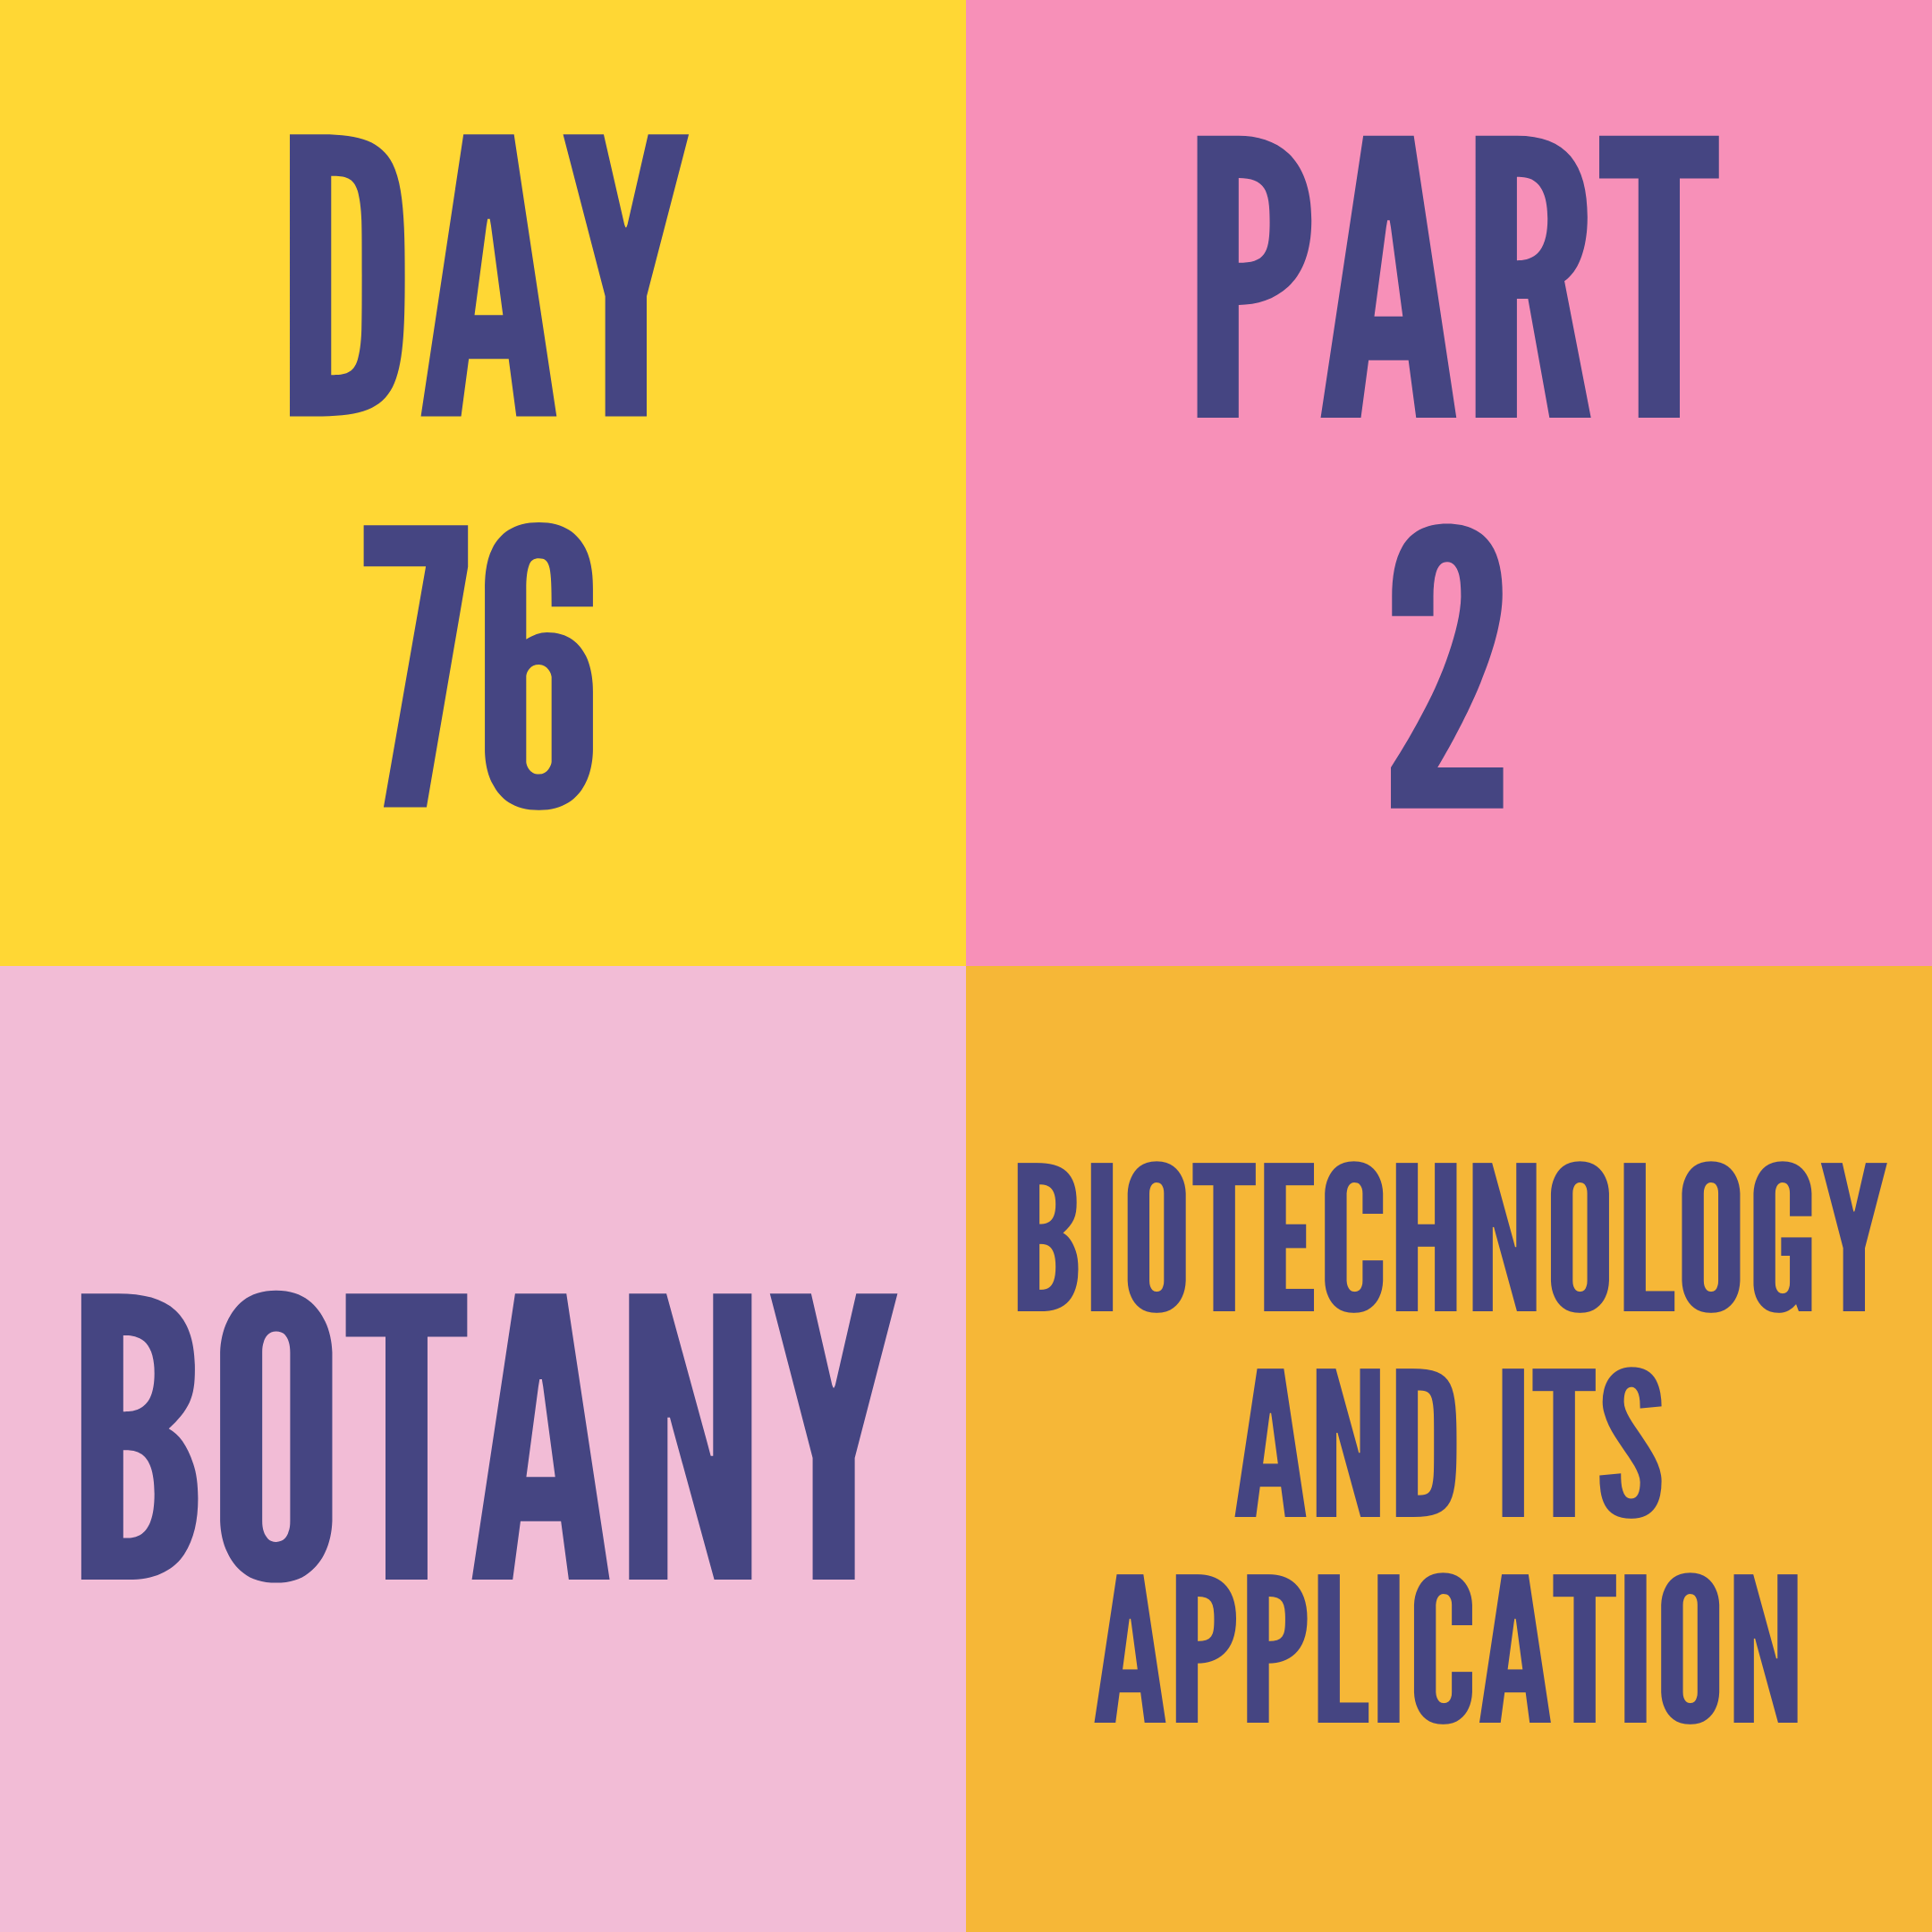 DAY-76 PART-2 BIOTECHNOLOGY AND ITS APPLICATION